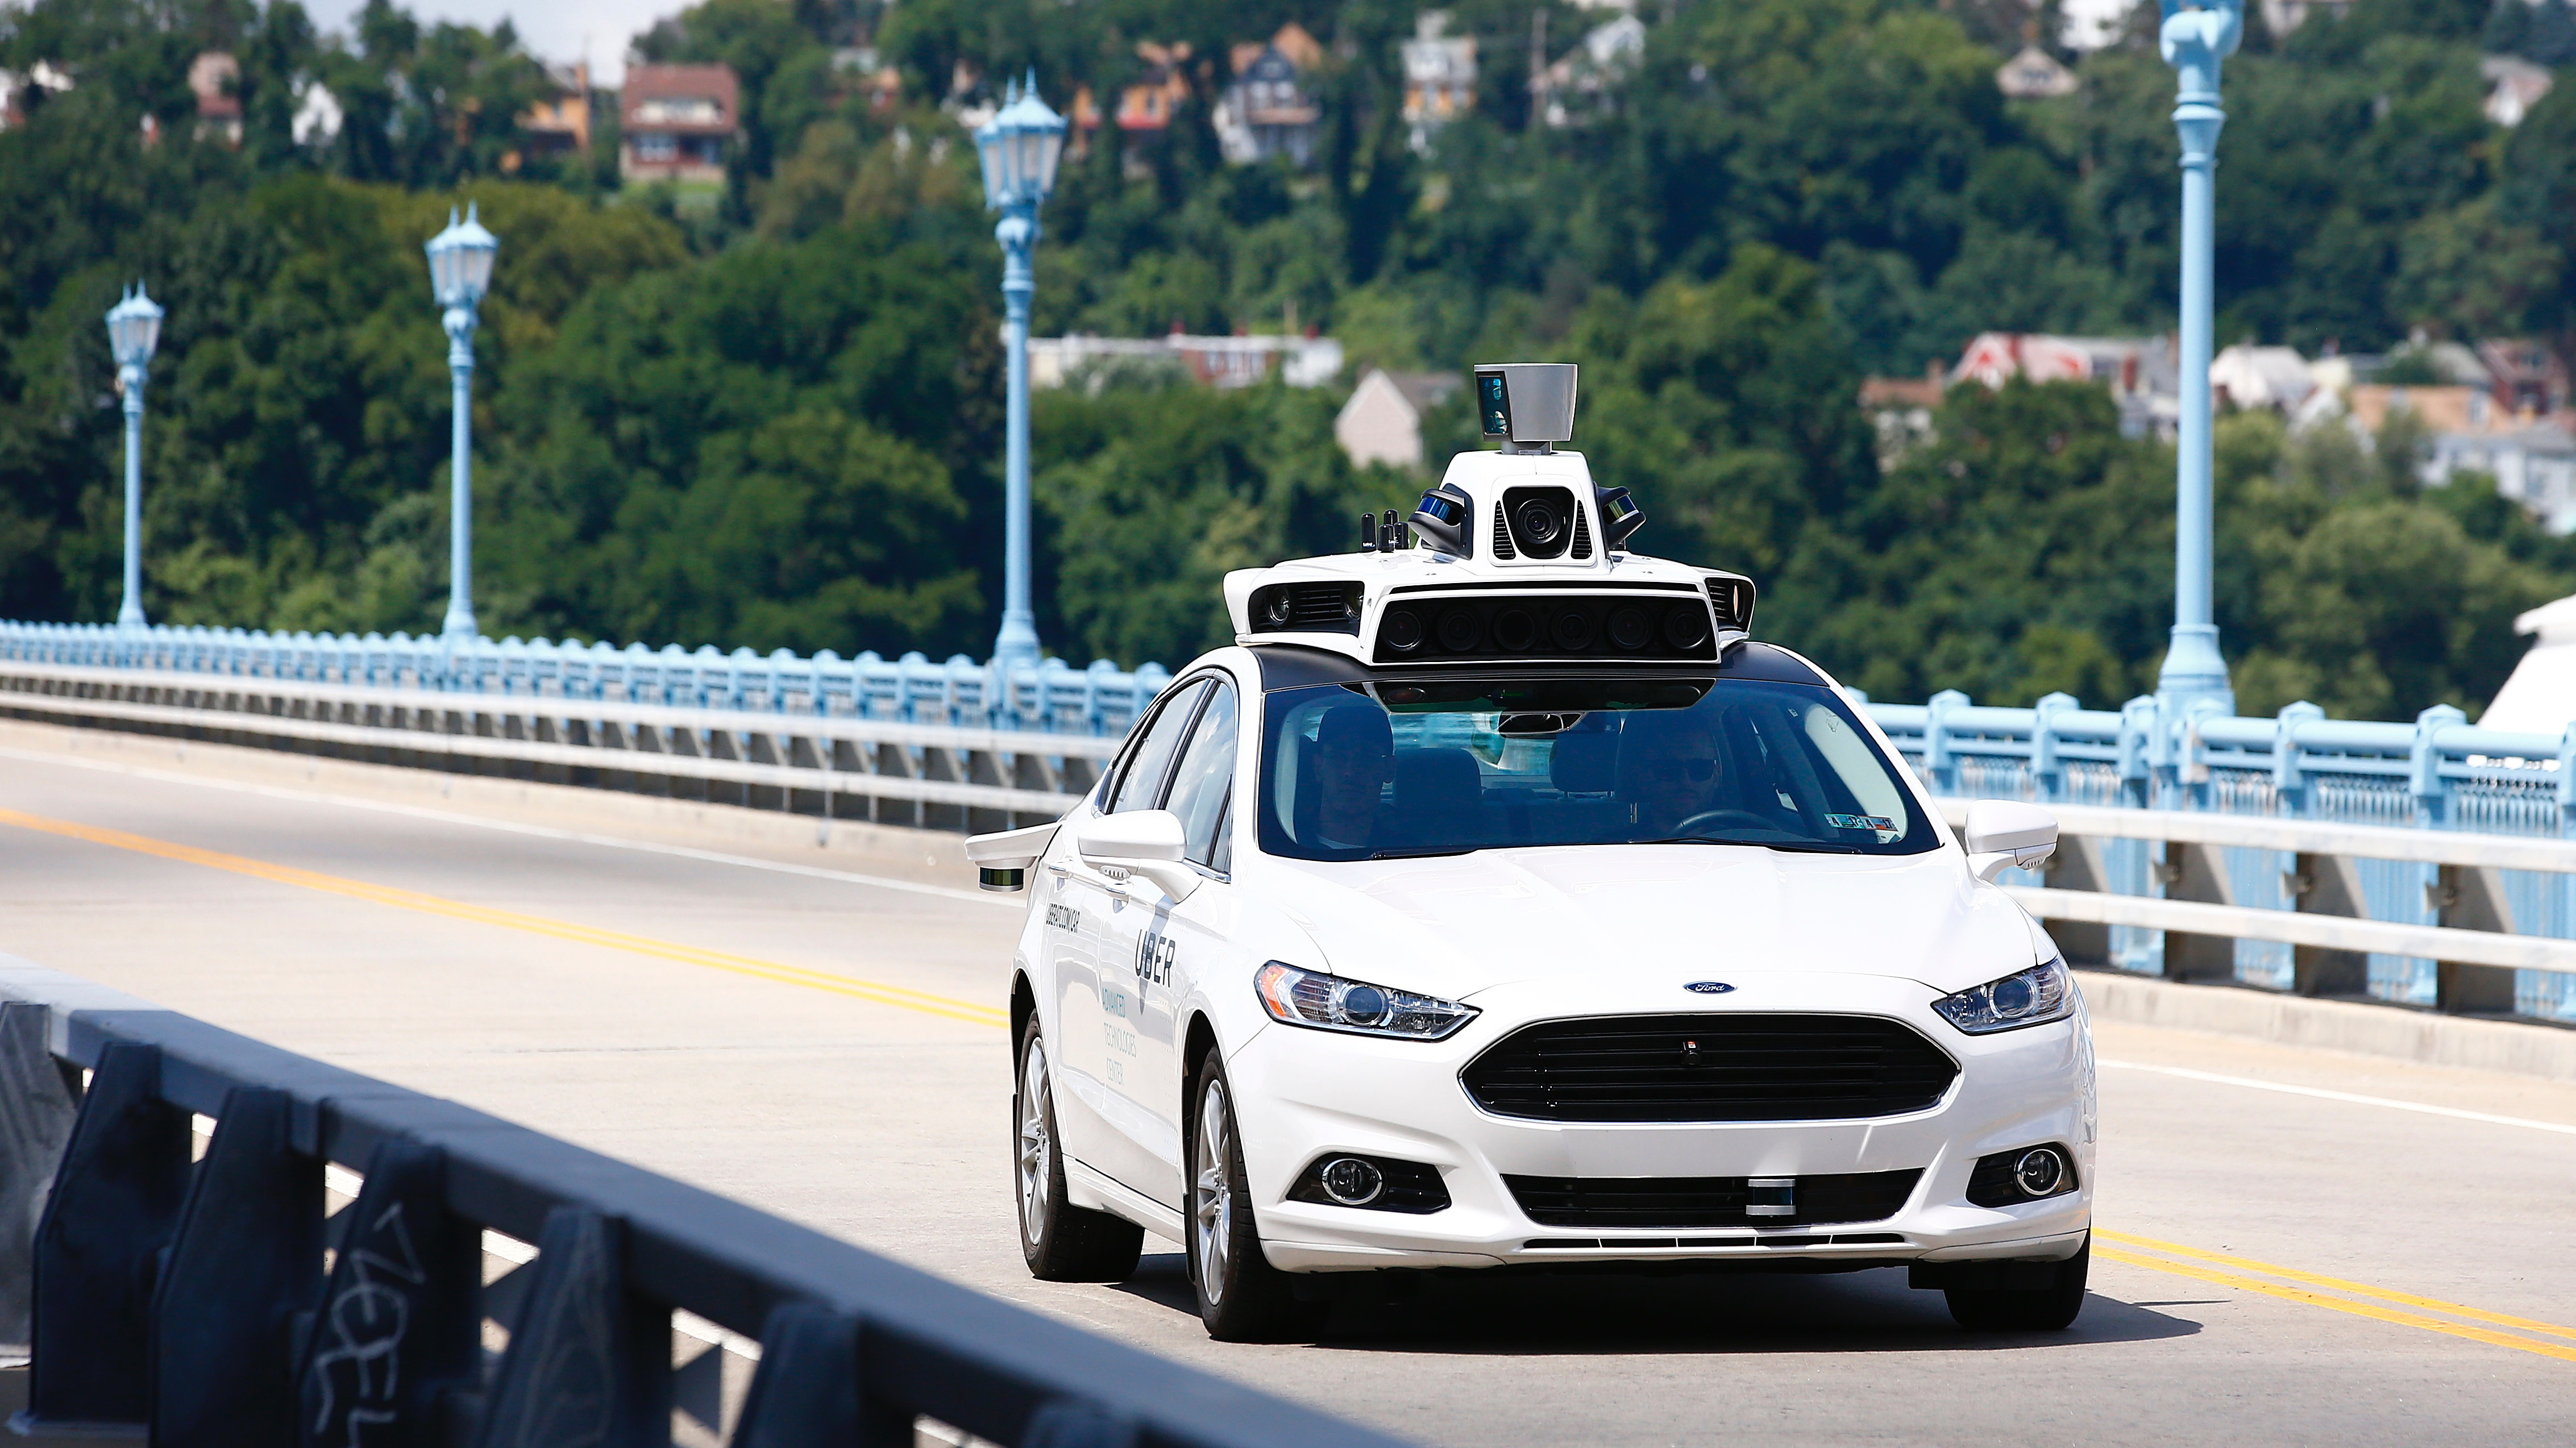 Uber employees test the self-driving Ford Fusion hybrid cars in Pittsburgh, Pa on Thursday, Aug. 18, 2016. (AP Photo/Jared Wickerham)